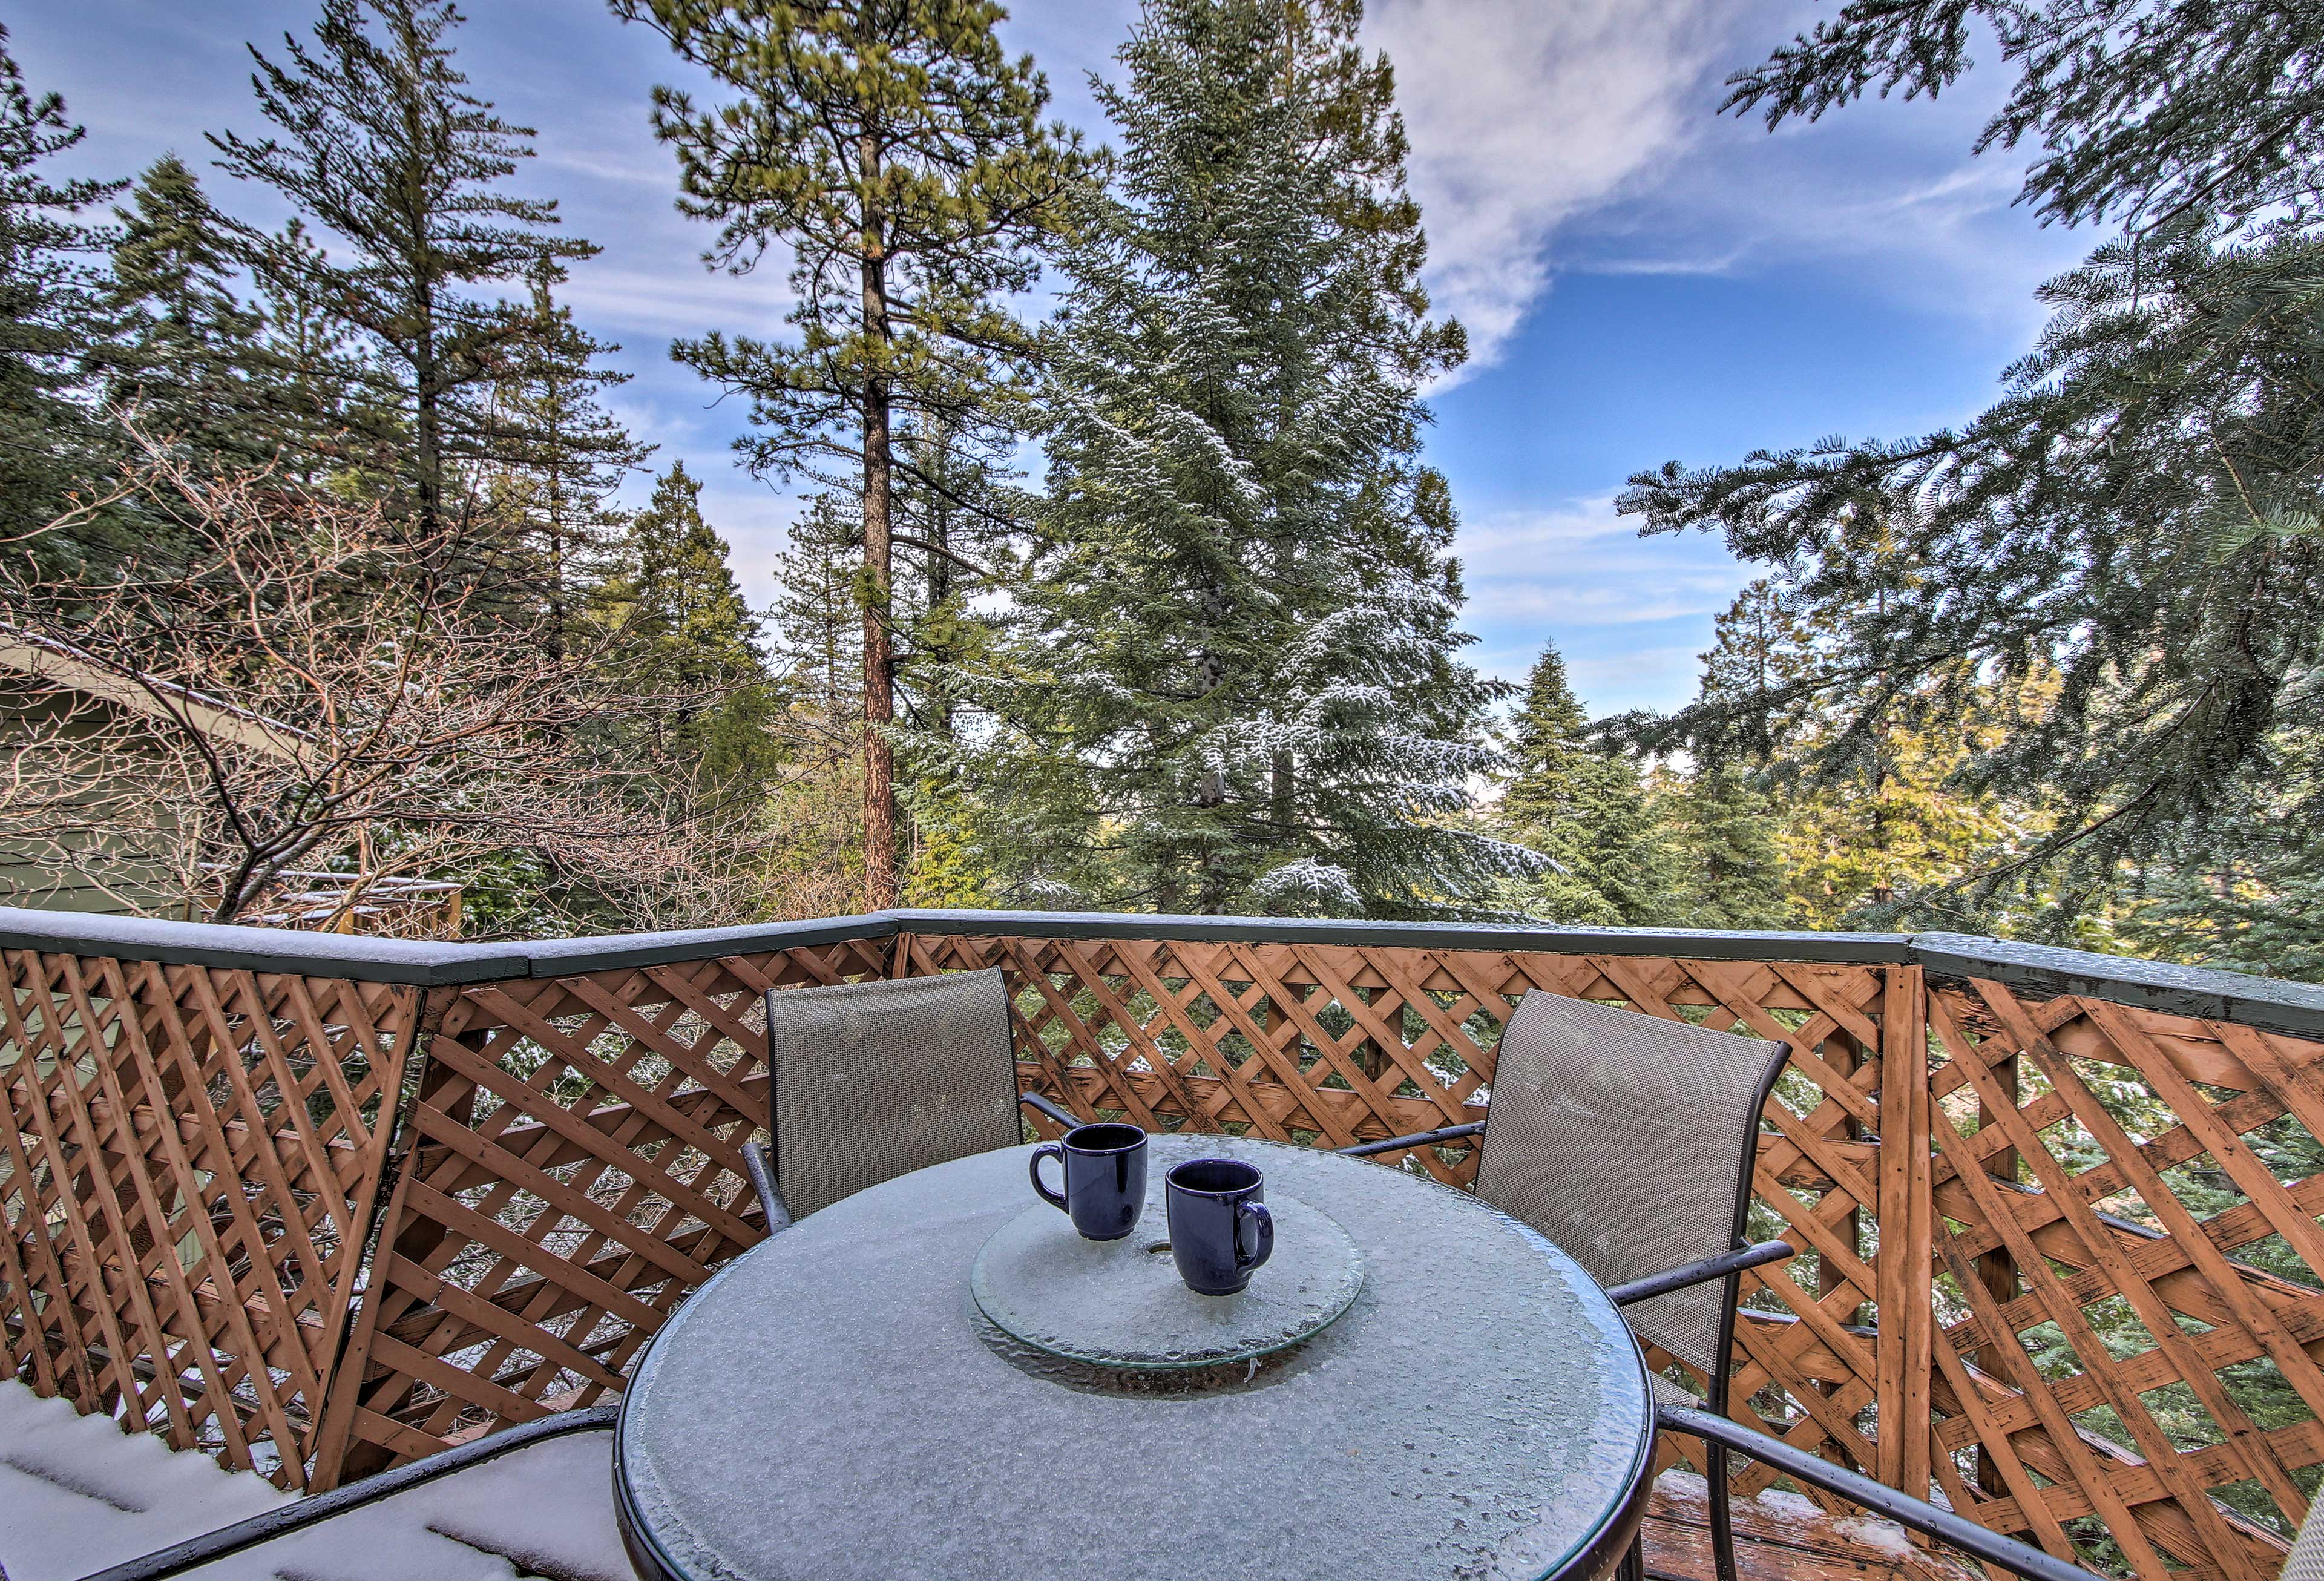 Enjoy coffee in the cool mountain air.